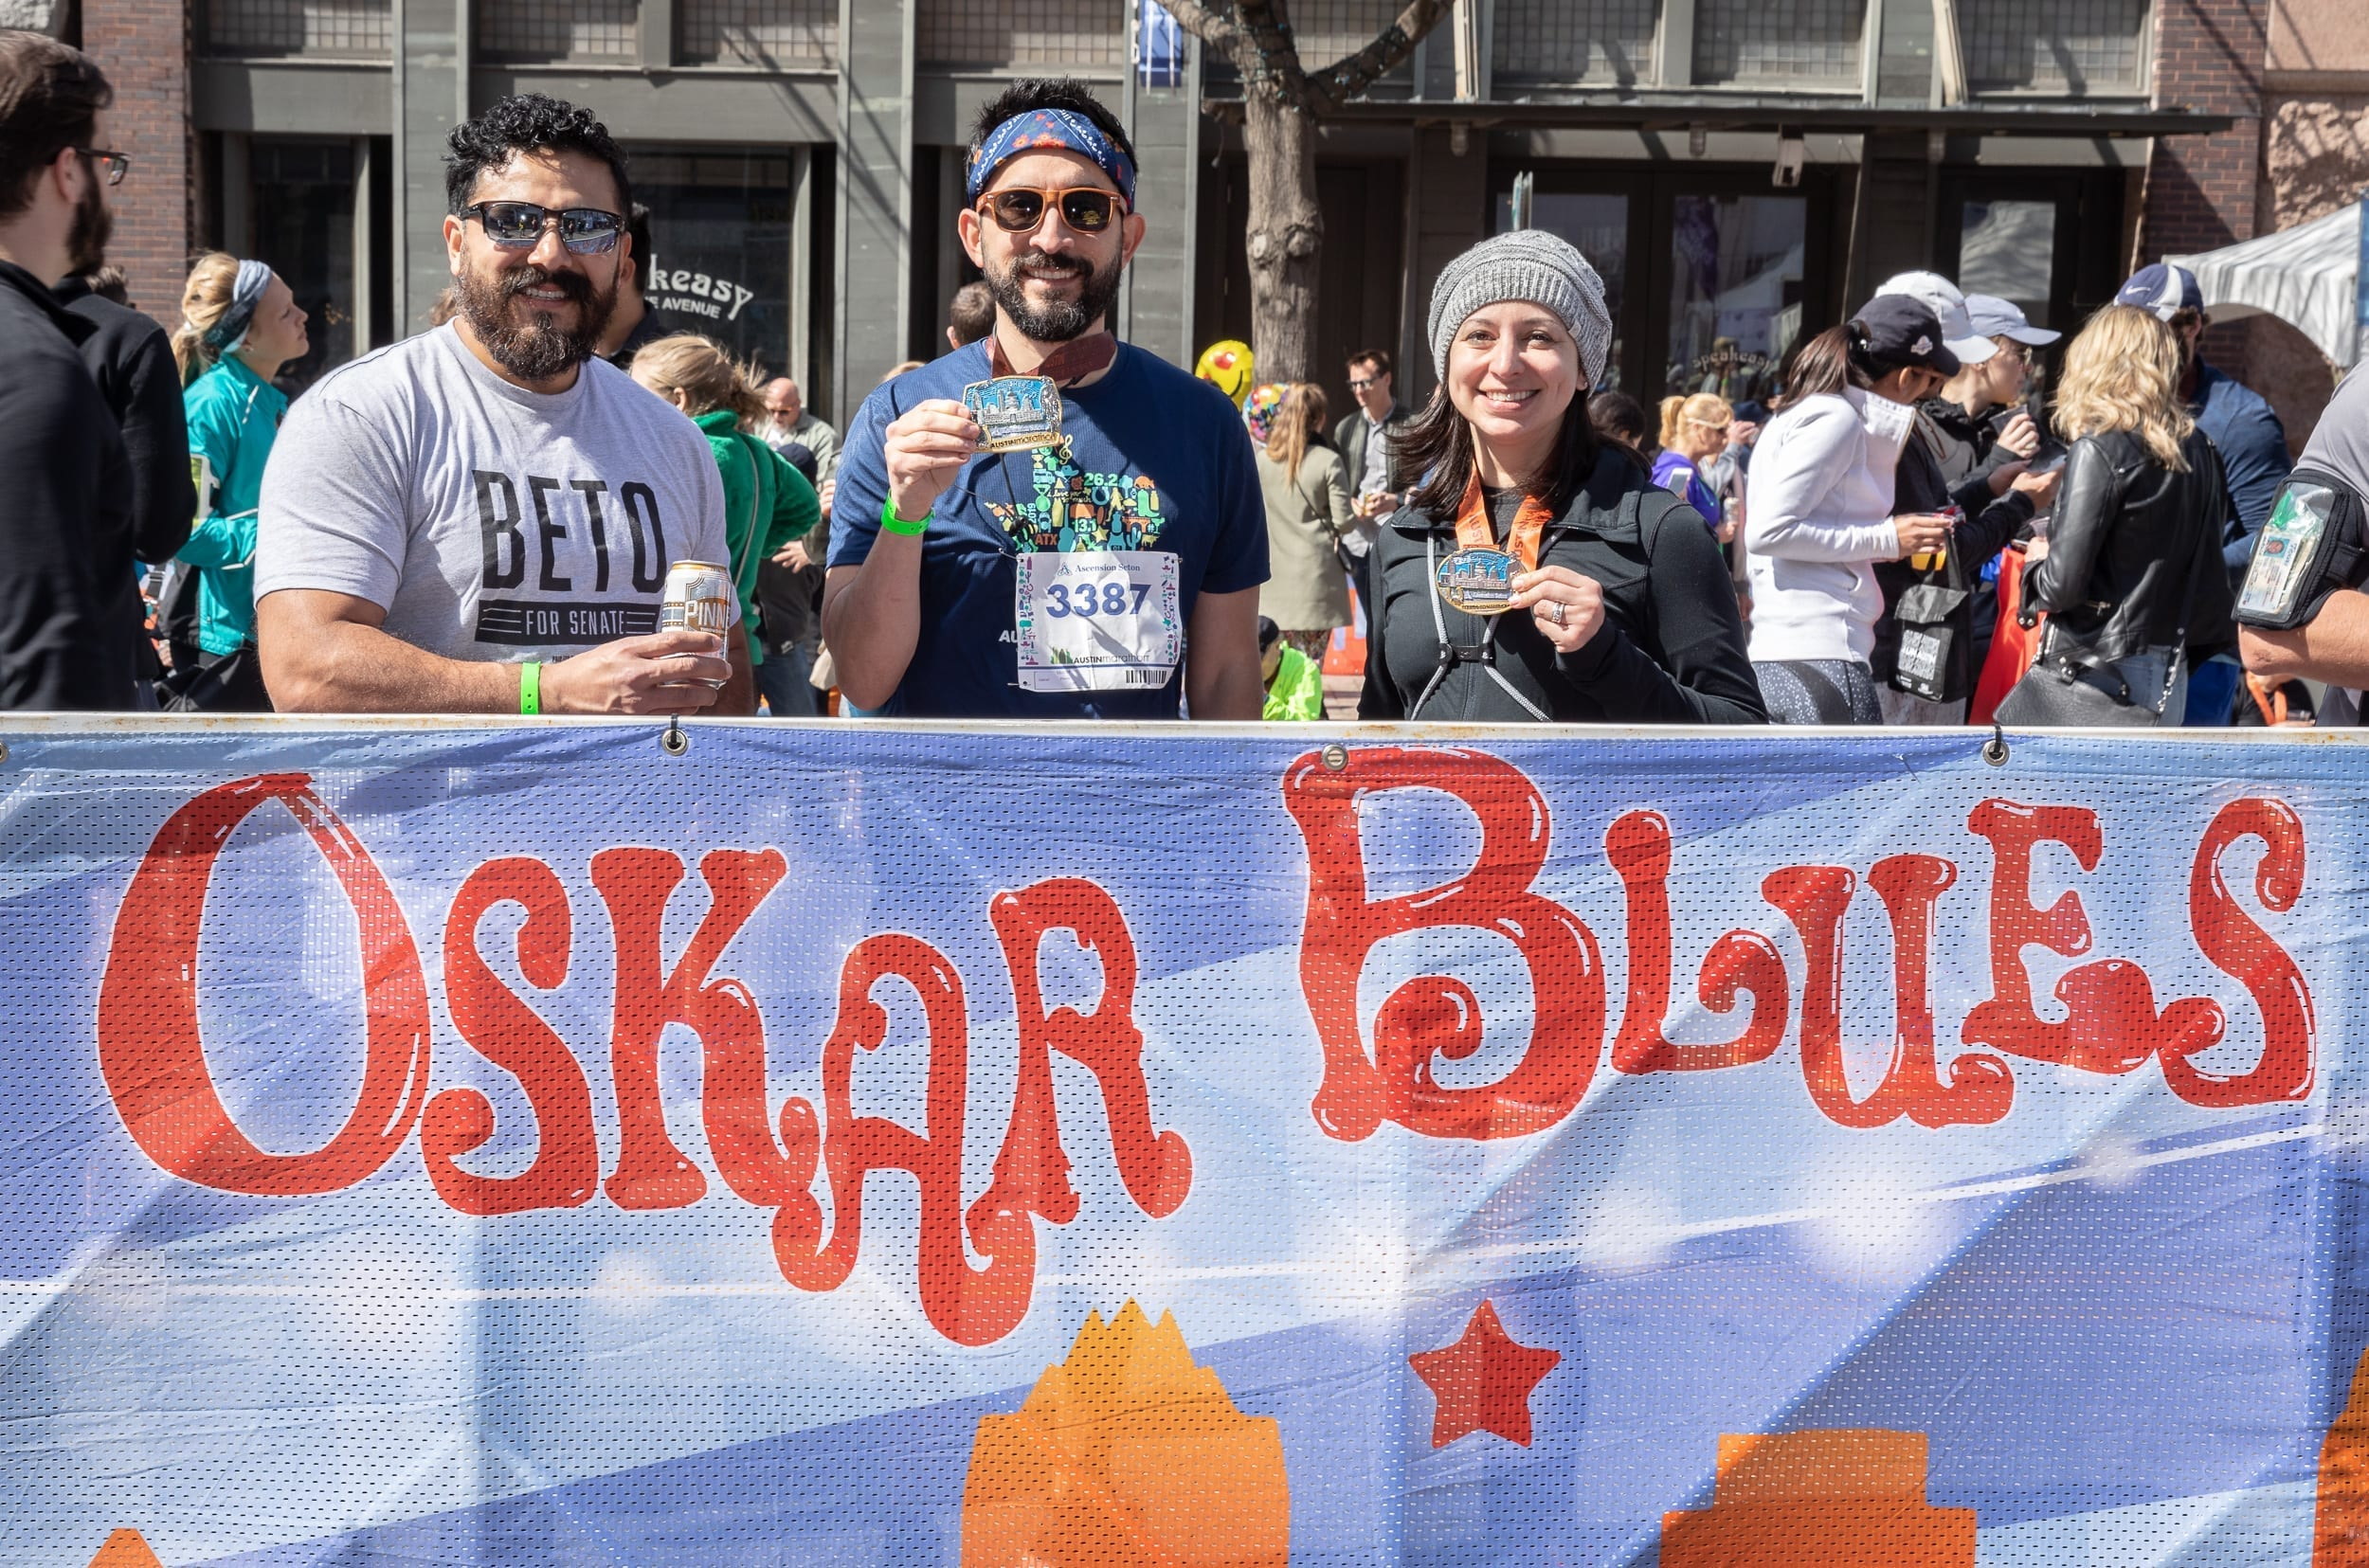 Runners show off their Austin Marathon finisher medals at the Oskar Blues Austin beer garden in the Austin Marathon's 3-block-long finish line festival.